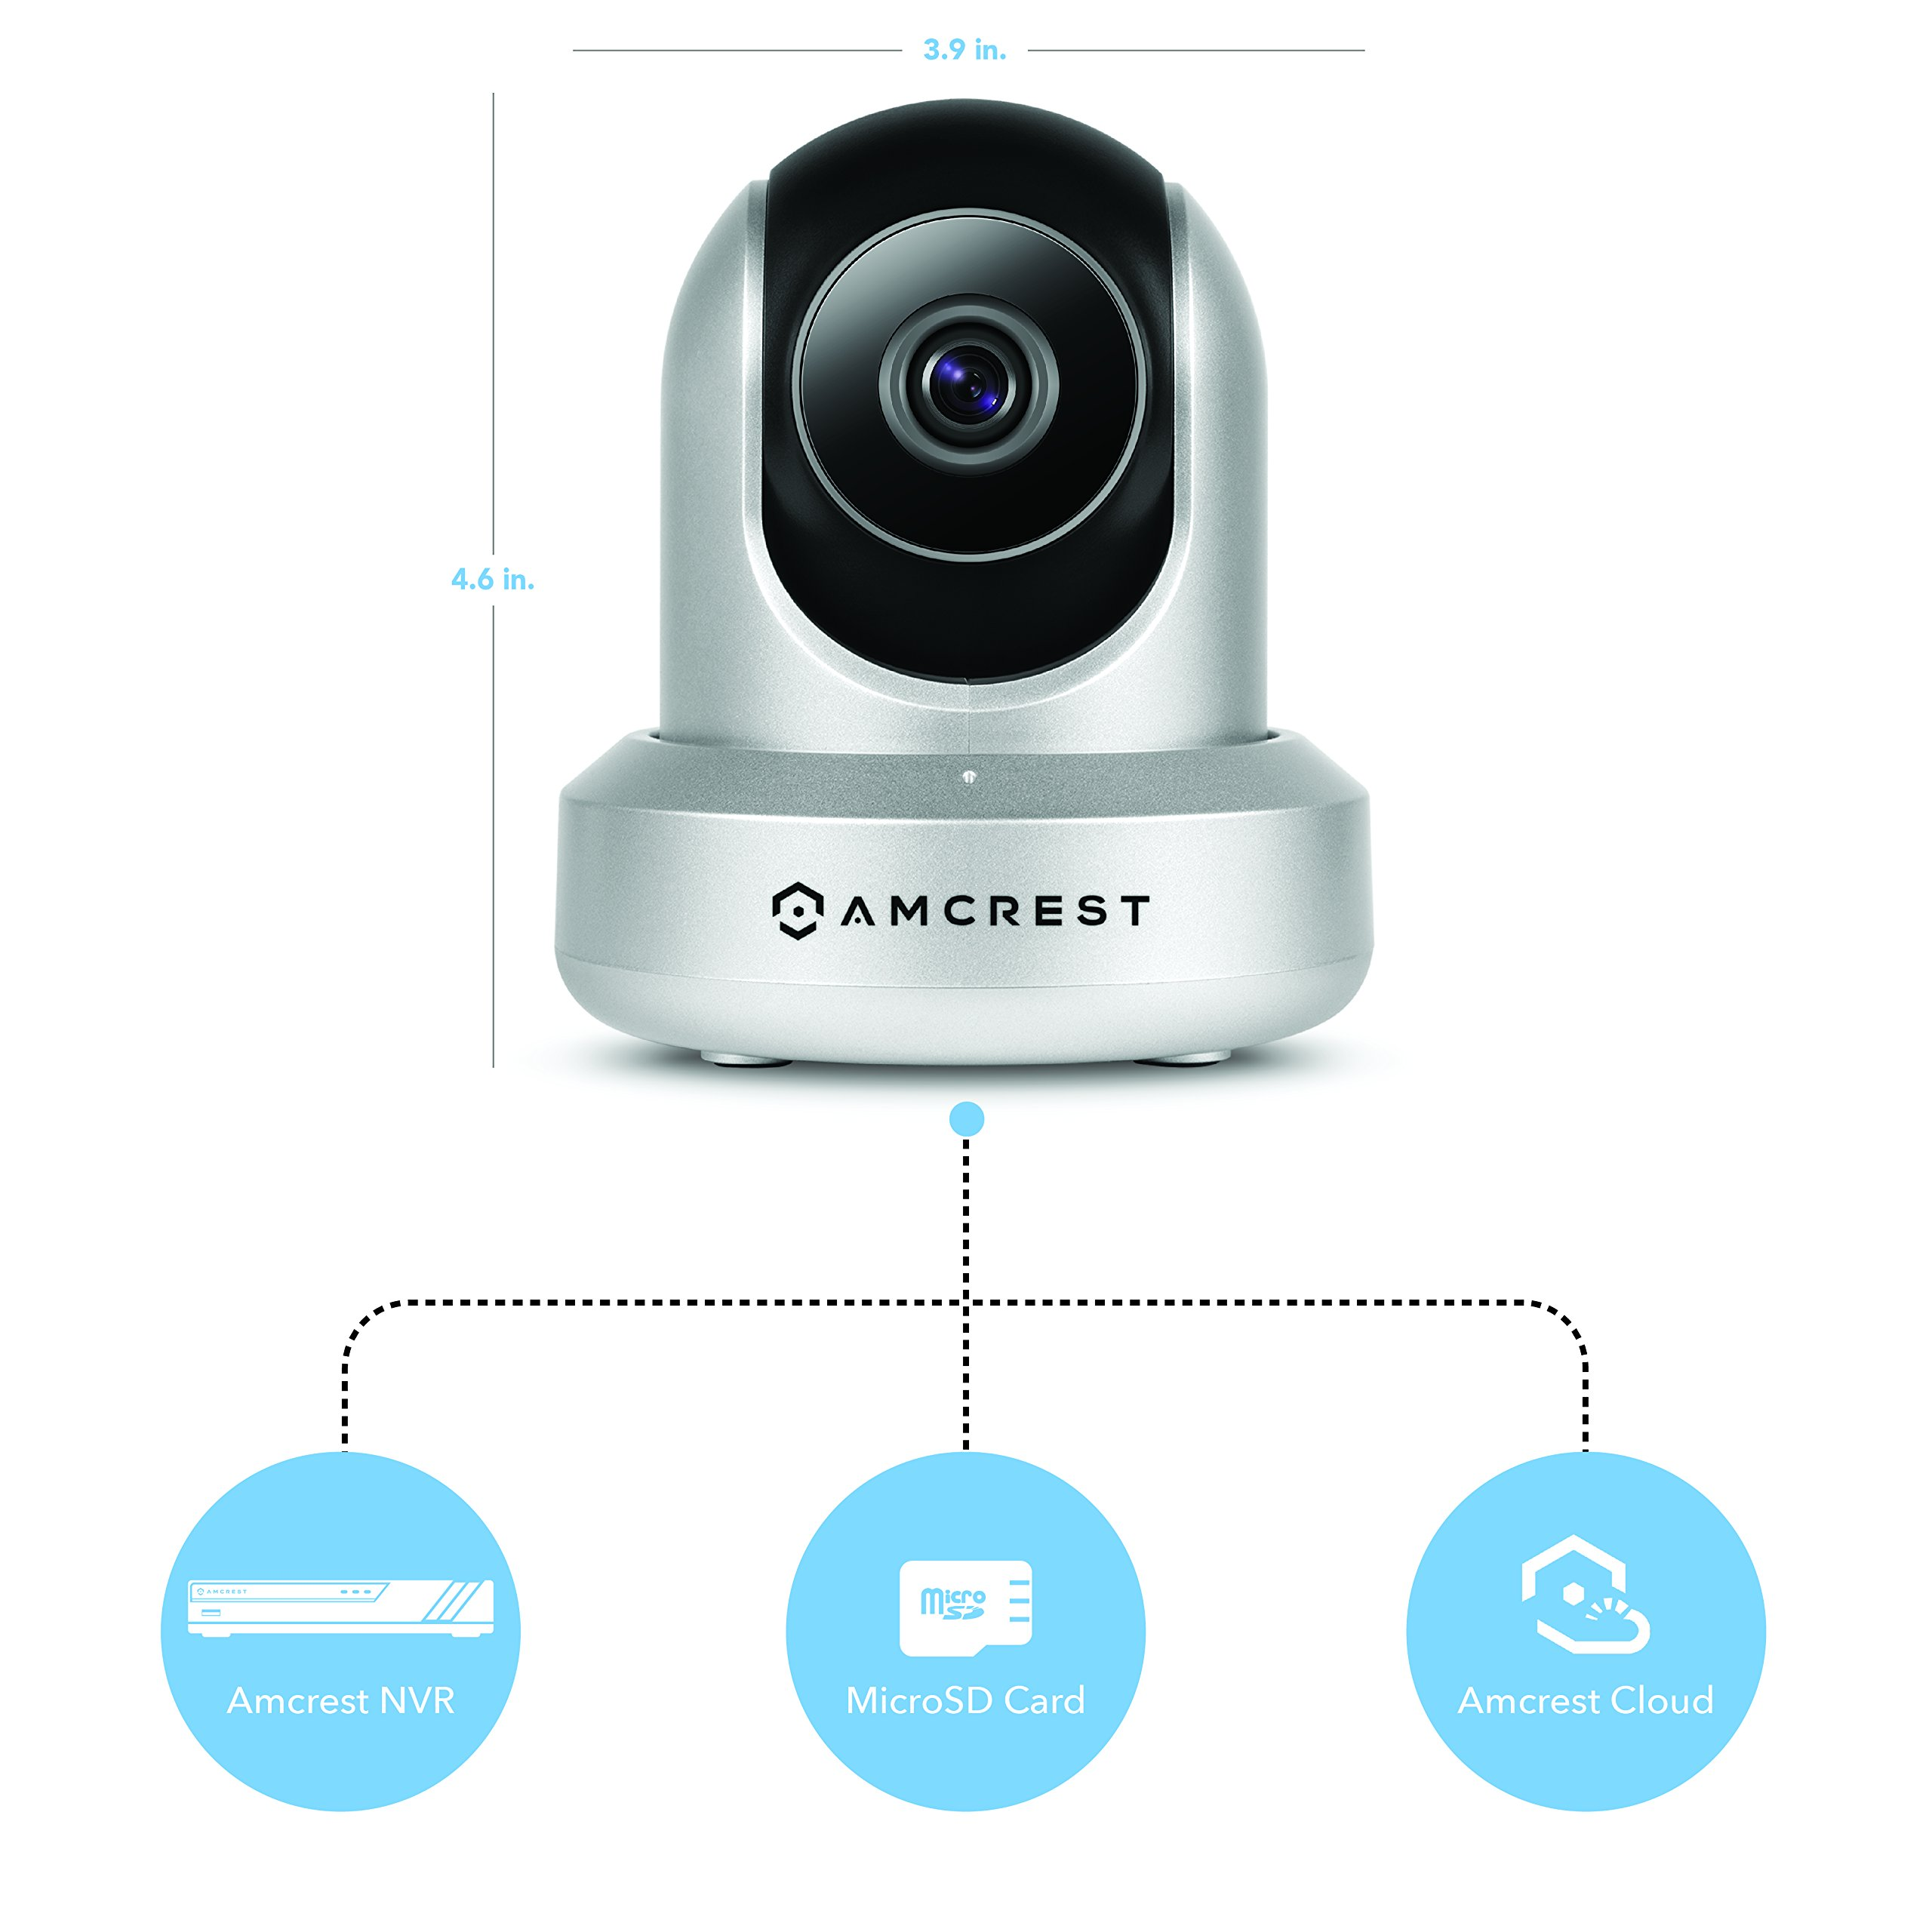 Amcrest HDSeries 720P POE (Power Over Ethernet) IP Security Surveillance Camera System IPM-721ES (Silver) (Certified Refurbished) by Amcrest (Image #1)